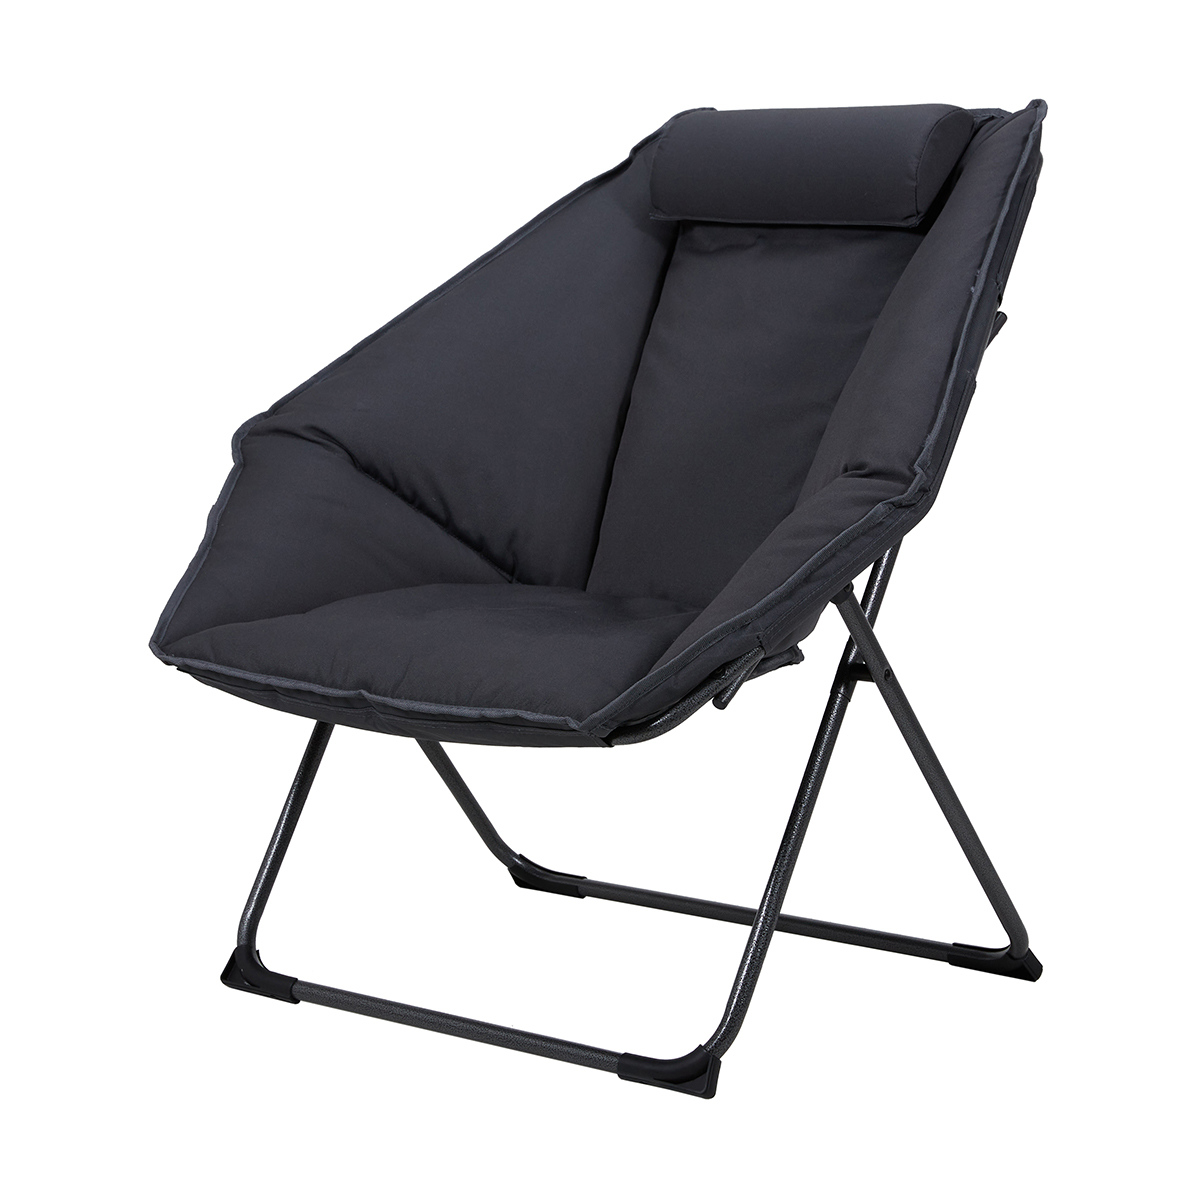 Camper Chairs Diamond Chair Kmart